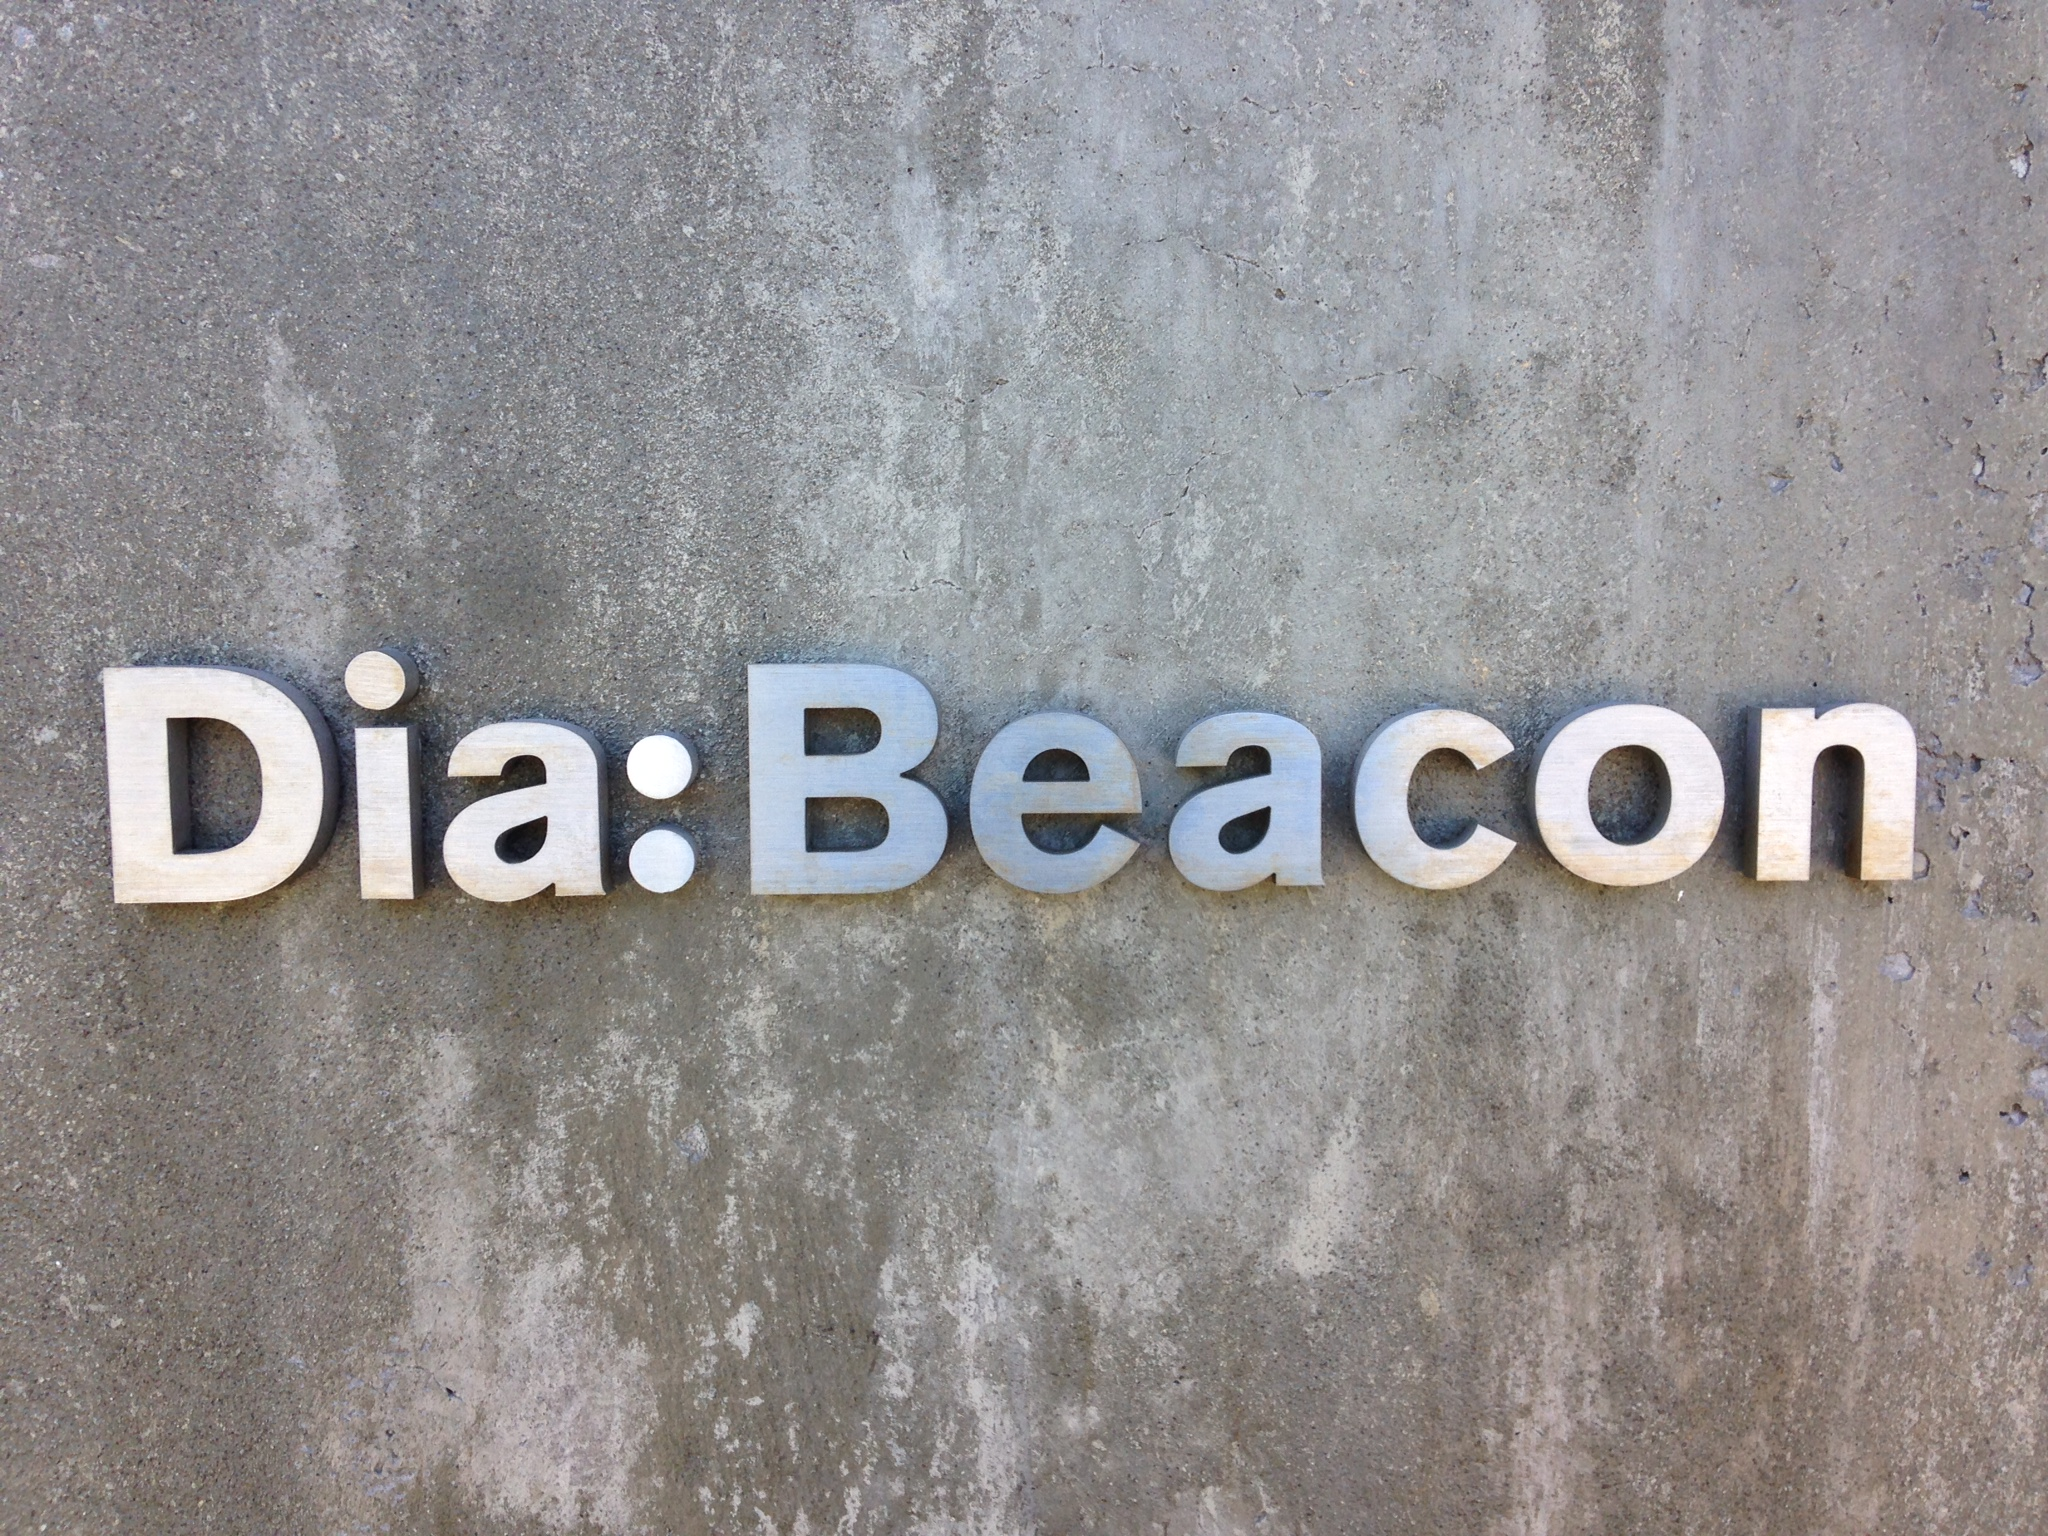 Dia-Beacon-sign.jpg